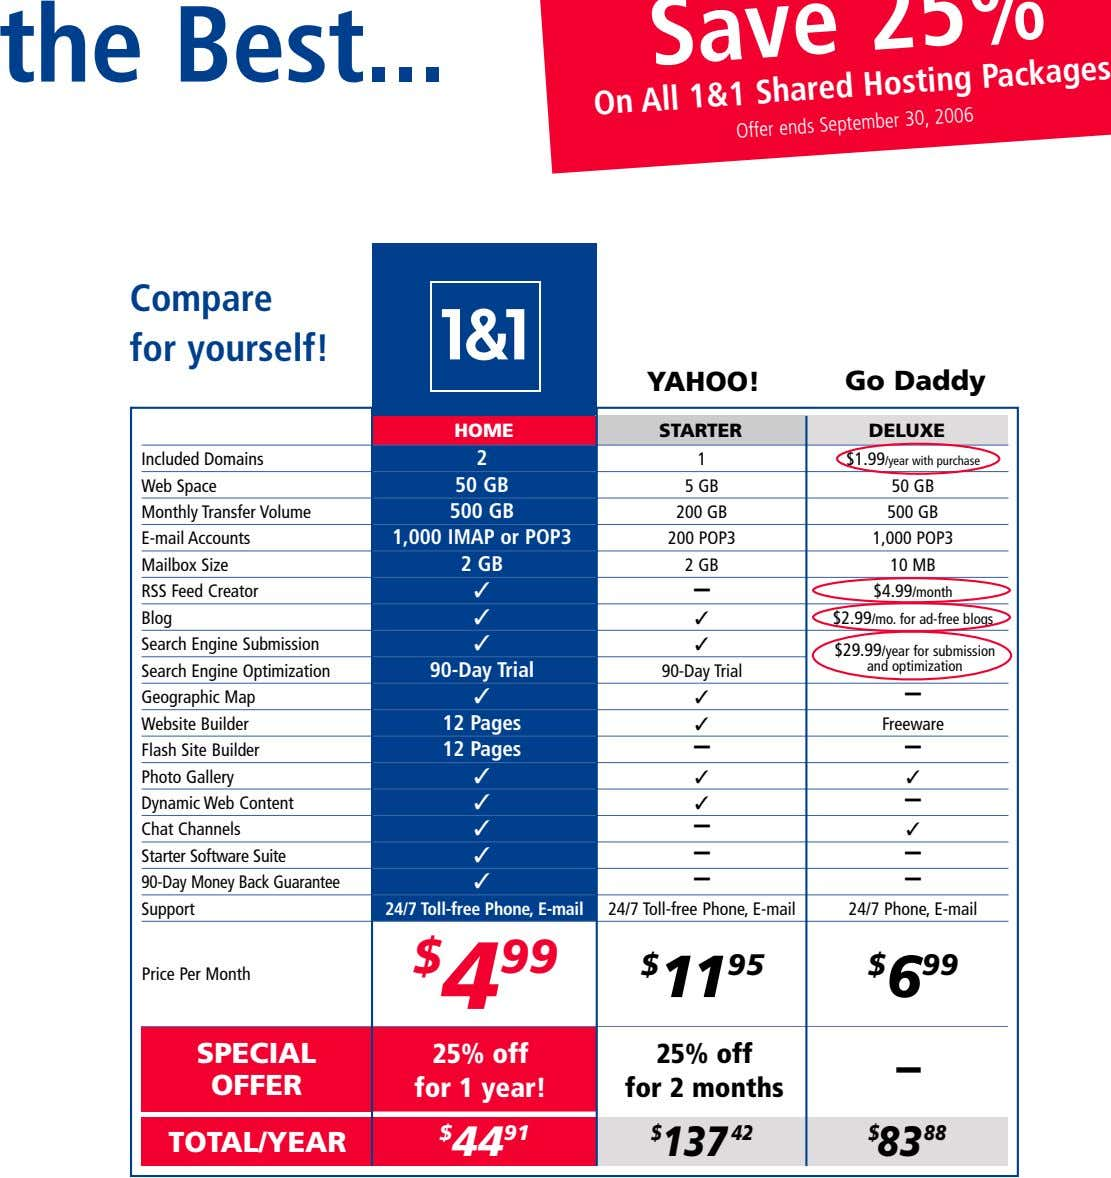 the Best On All 1&1 Shared Hosting Packages Offer ends September 30, 2006 Compare for